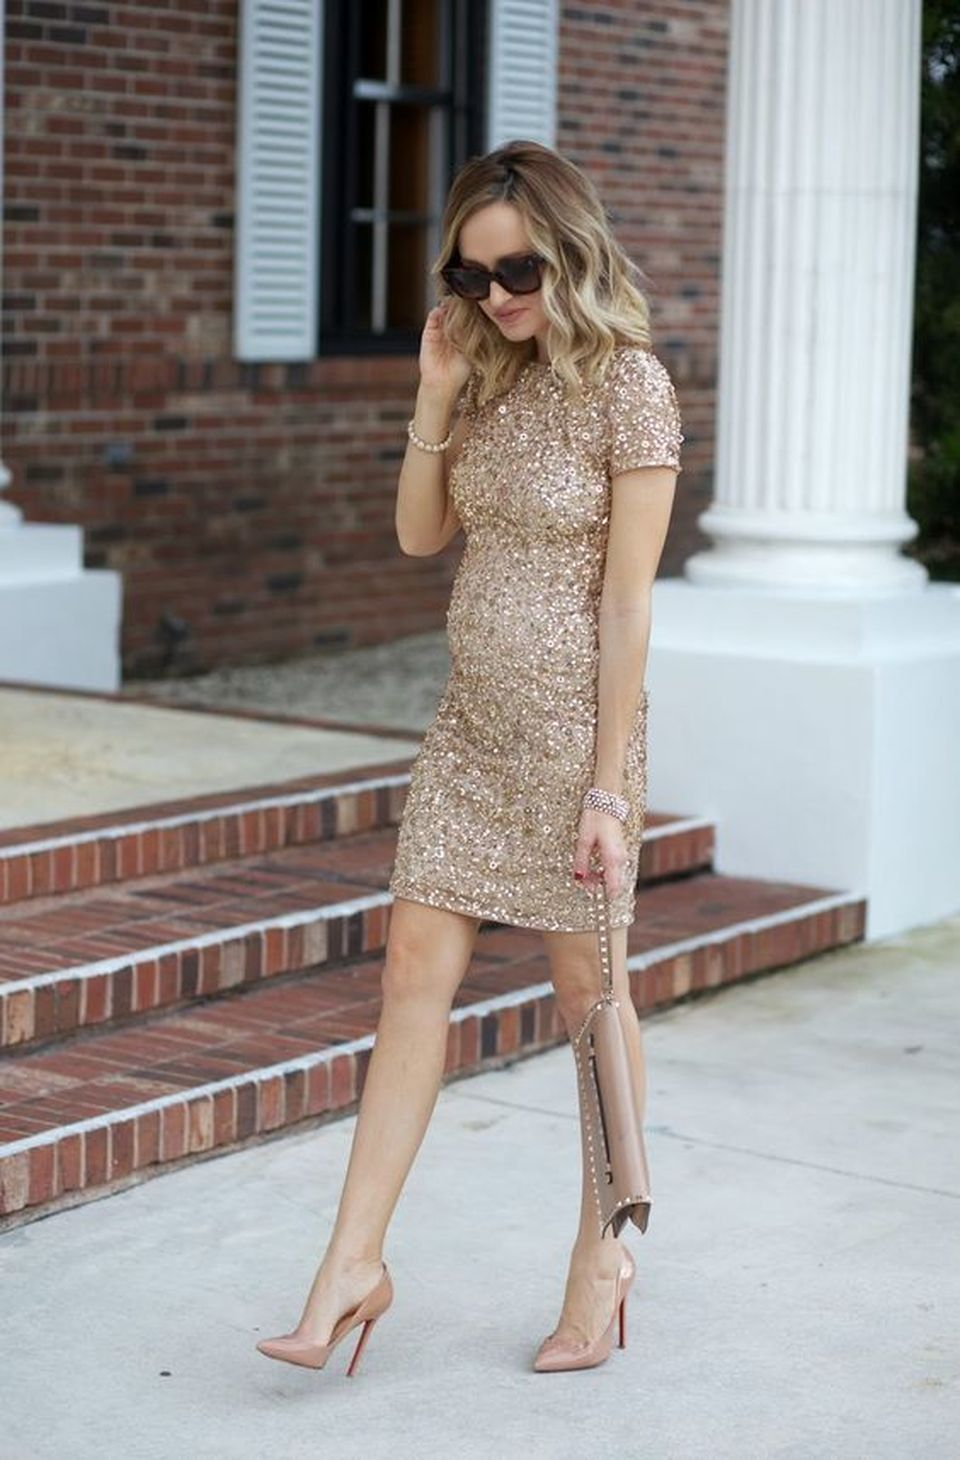 Sequin dress for new year eve party and night out 102